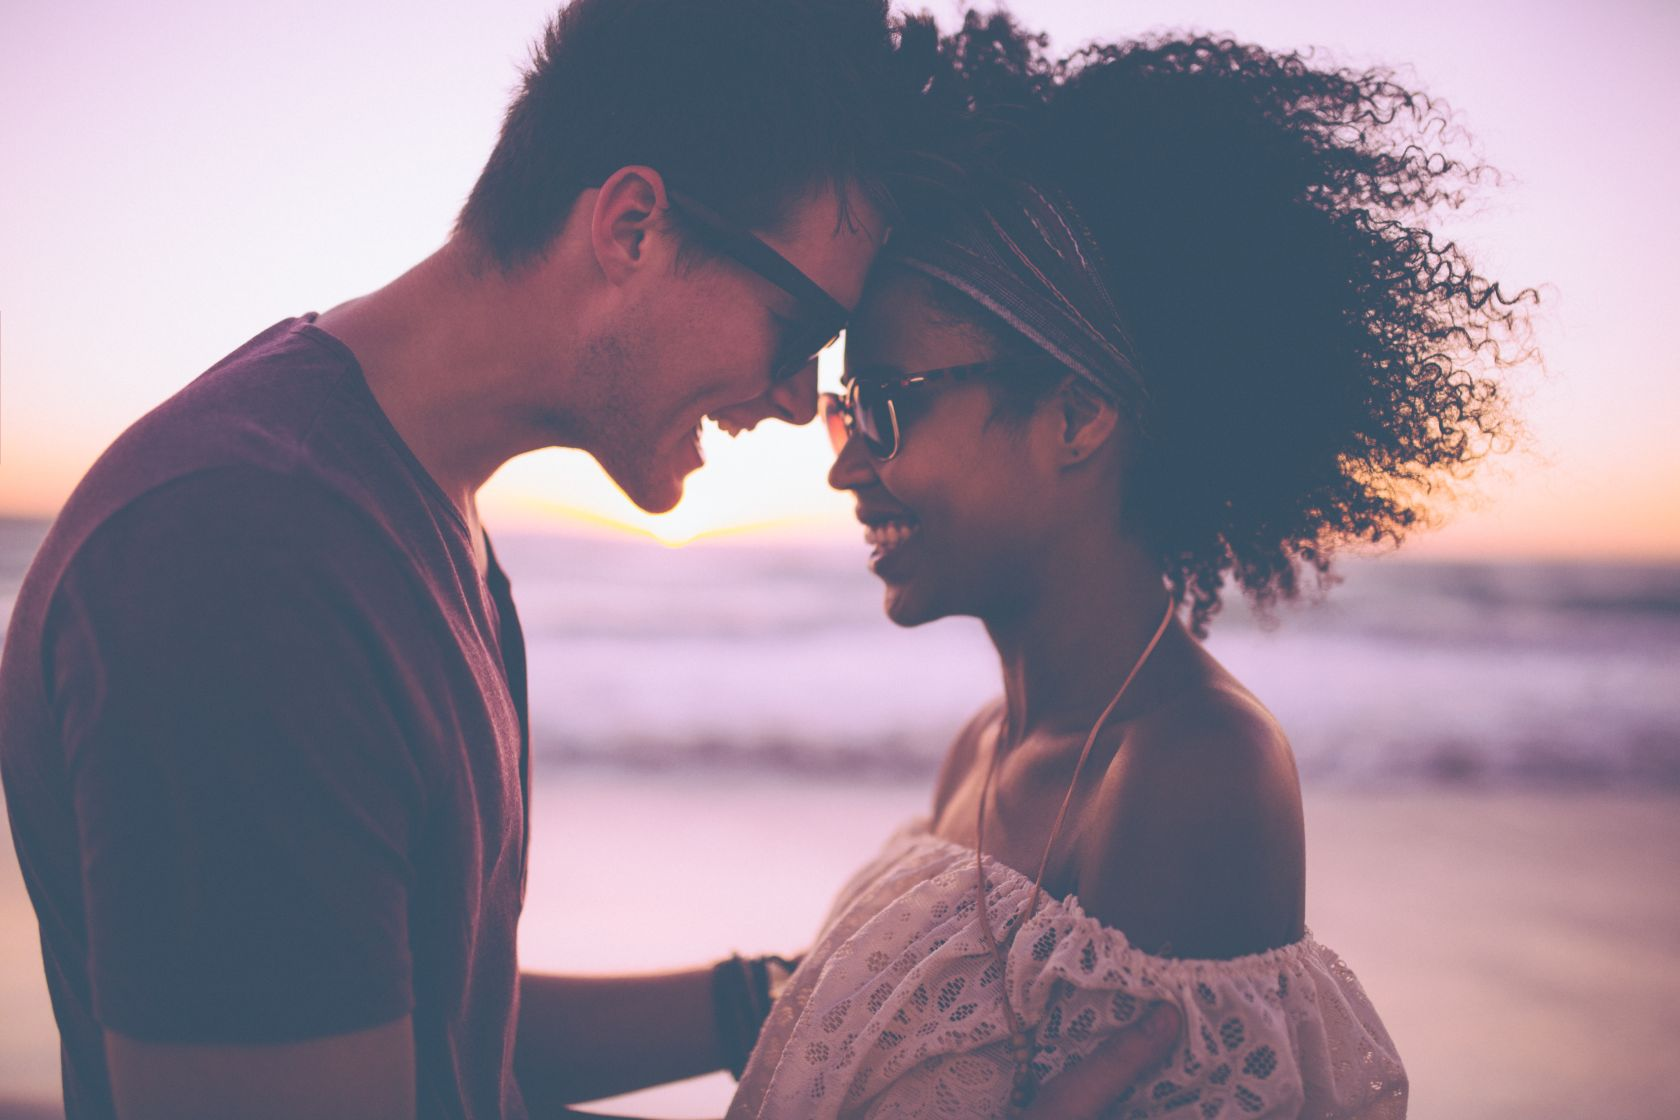 Mixed race couple sharing a romantic moment at sunset